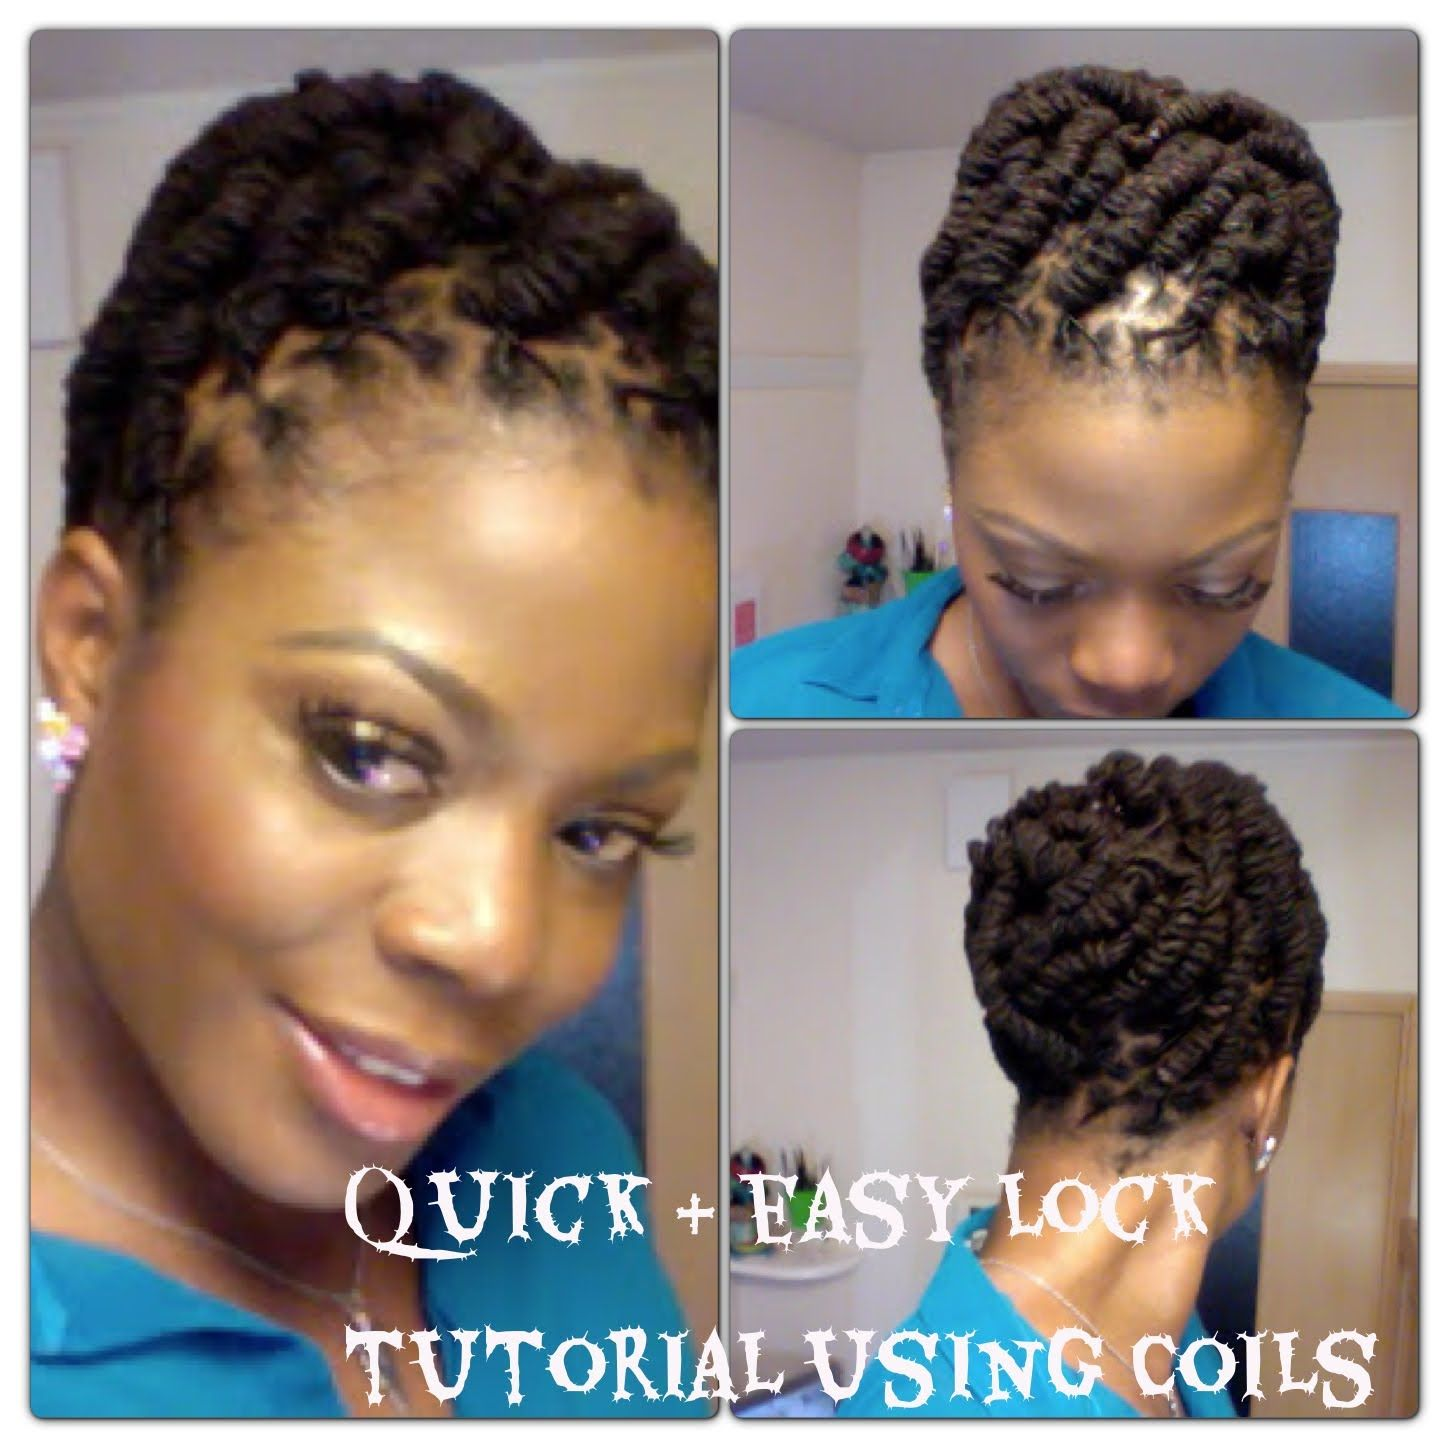 Simple And Quick Lock Hairstyle Using Coils Fashion Made Easy